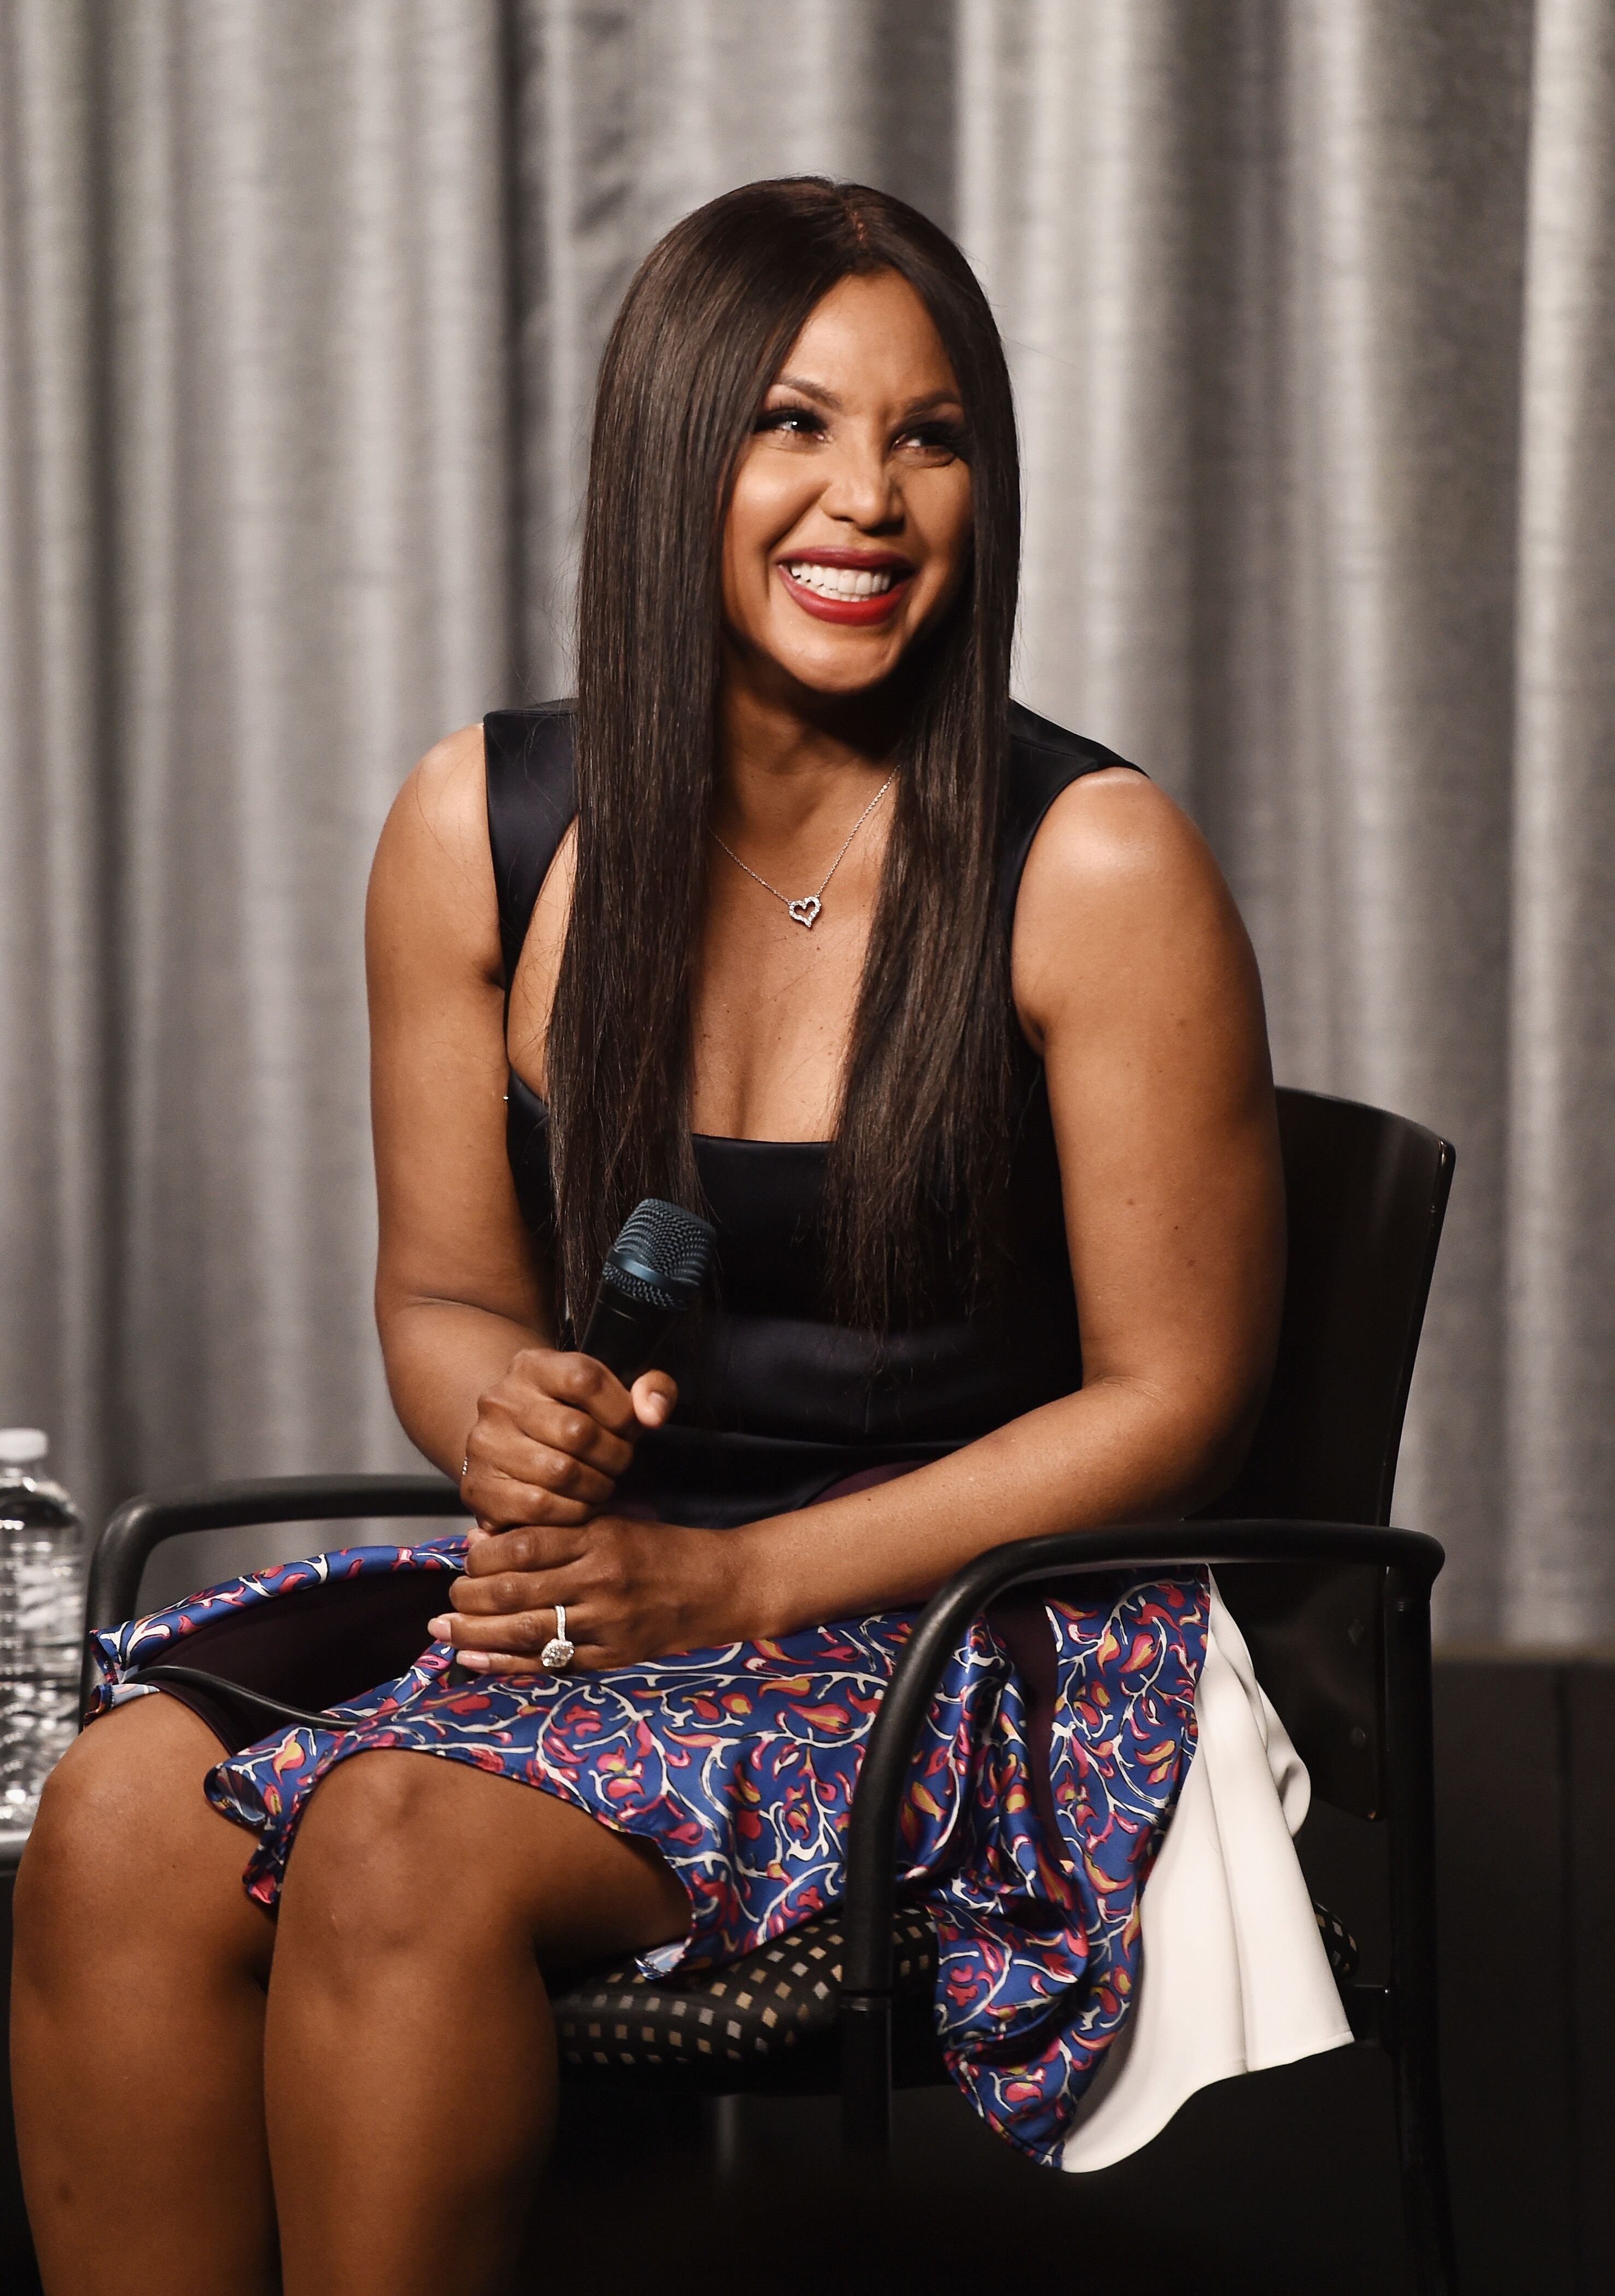 """Singer and actress Toni Braxton attends the SAG-AFTRA Foundation Conversations screening and Q&A of """"Faith Under Fire"""" at the SAG-AFTRA Foundation Screening Room on June 11, 2018   Photo: Getty Images"""